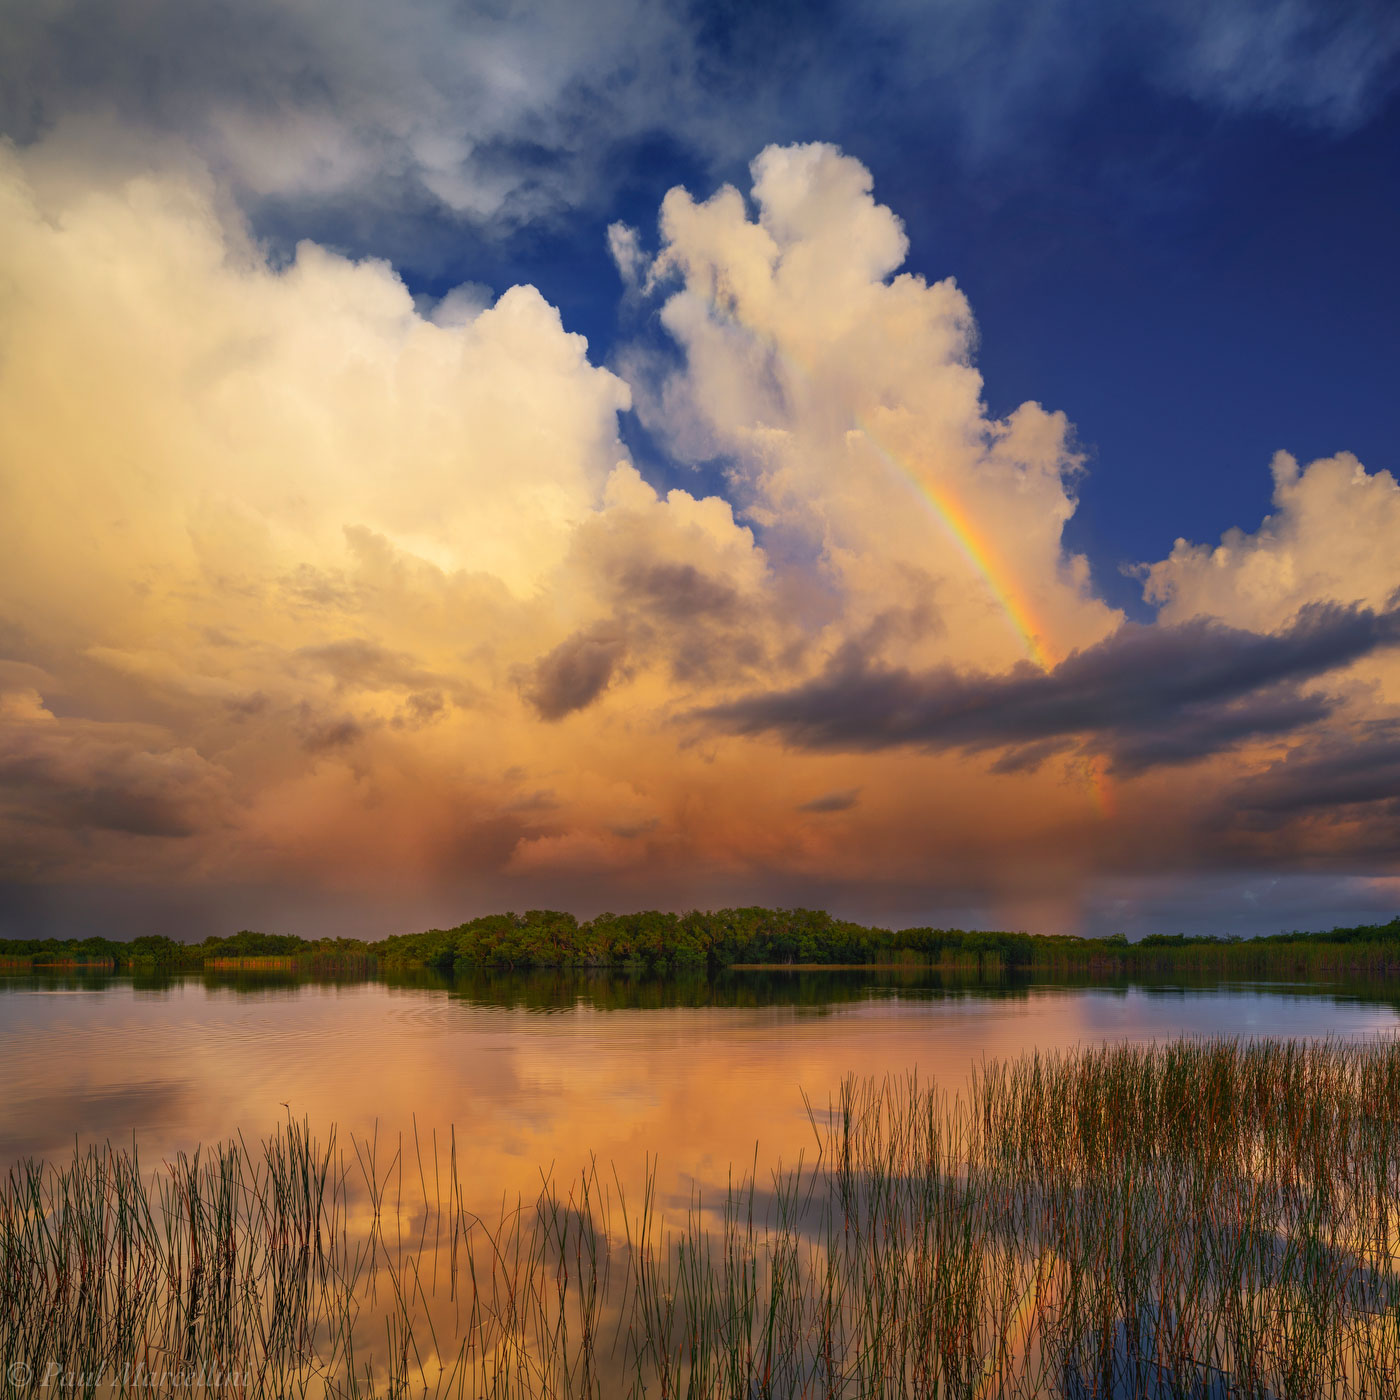 Nine Mile Pond, Everglades National Park, Florida, clouds, rainbow, nature, photography, florida national parks, photo